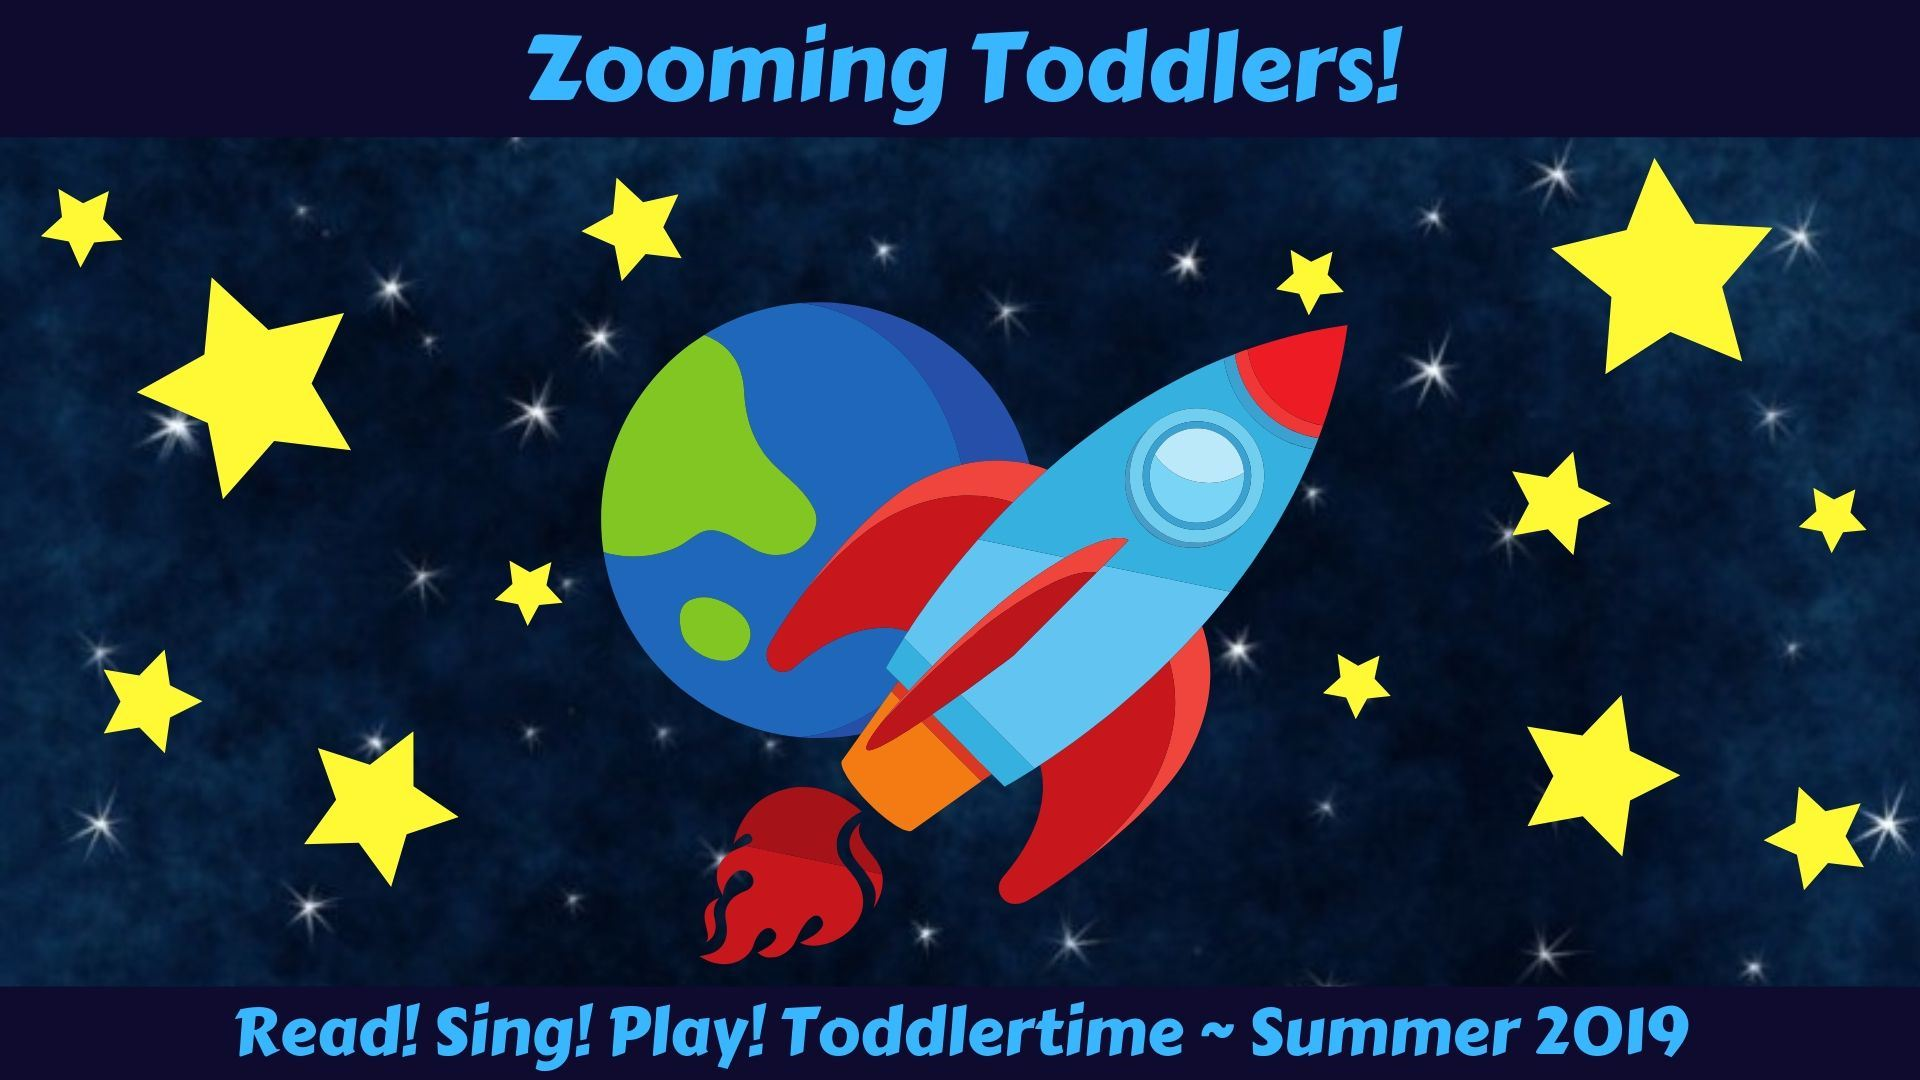 Zooming Toddlers!  with rocket and earth